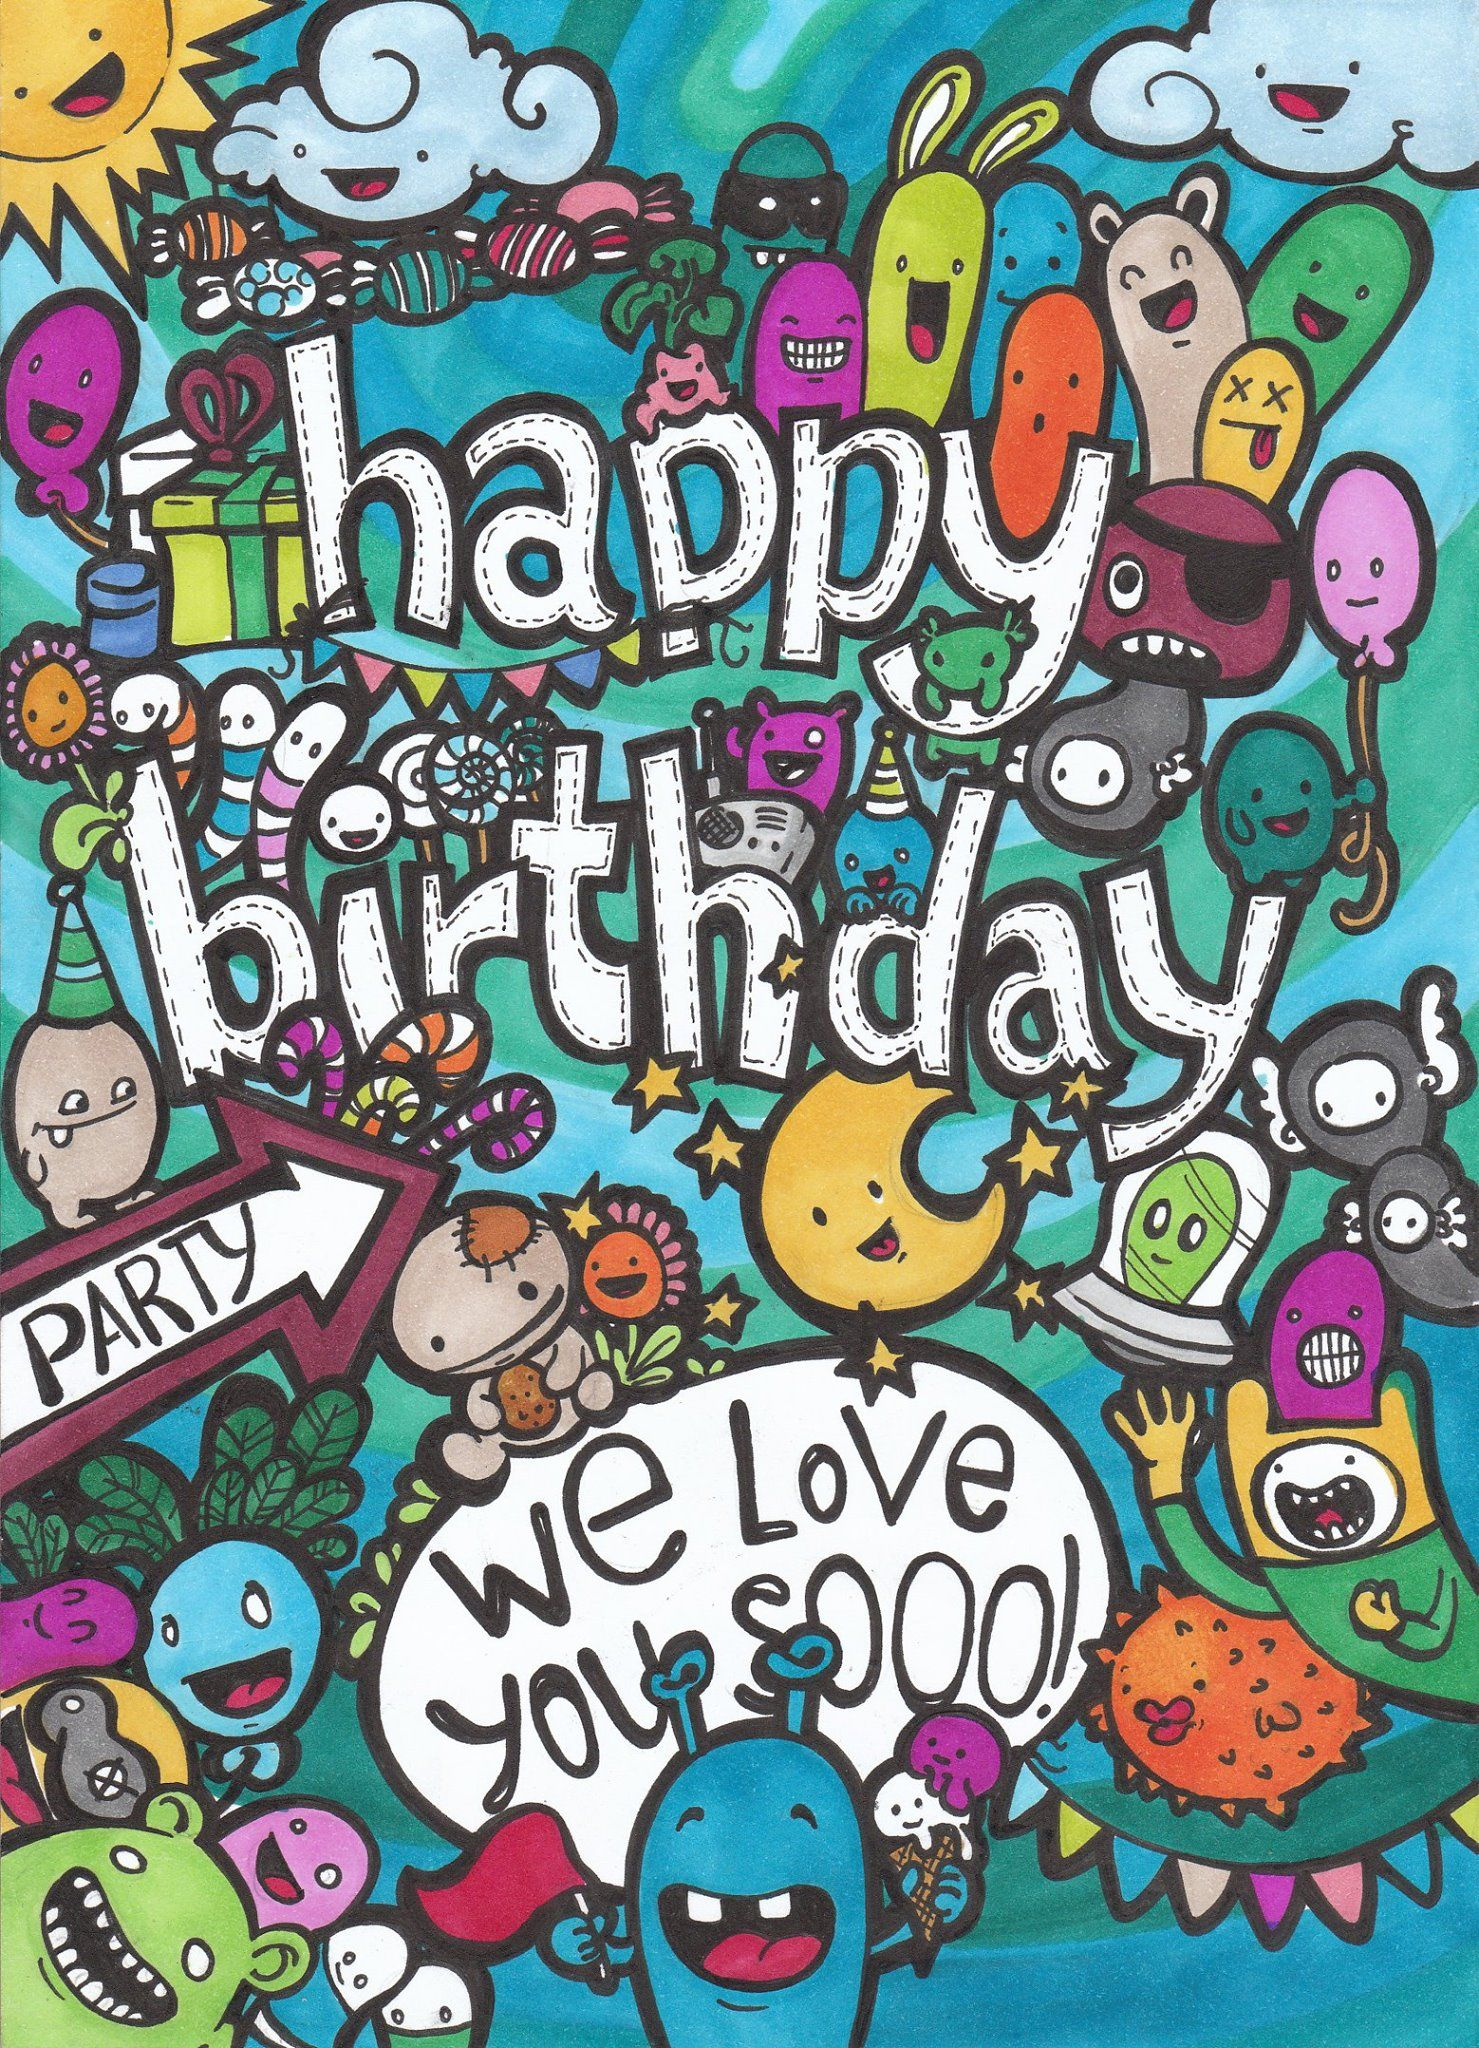 Doodle Doodleart Art Color Happybirthday Birthday Greetingcard Card